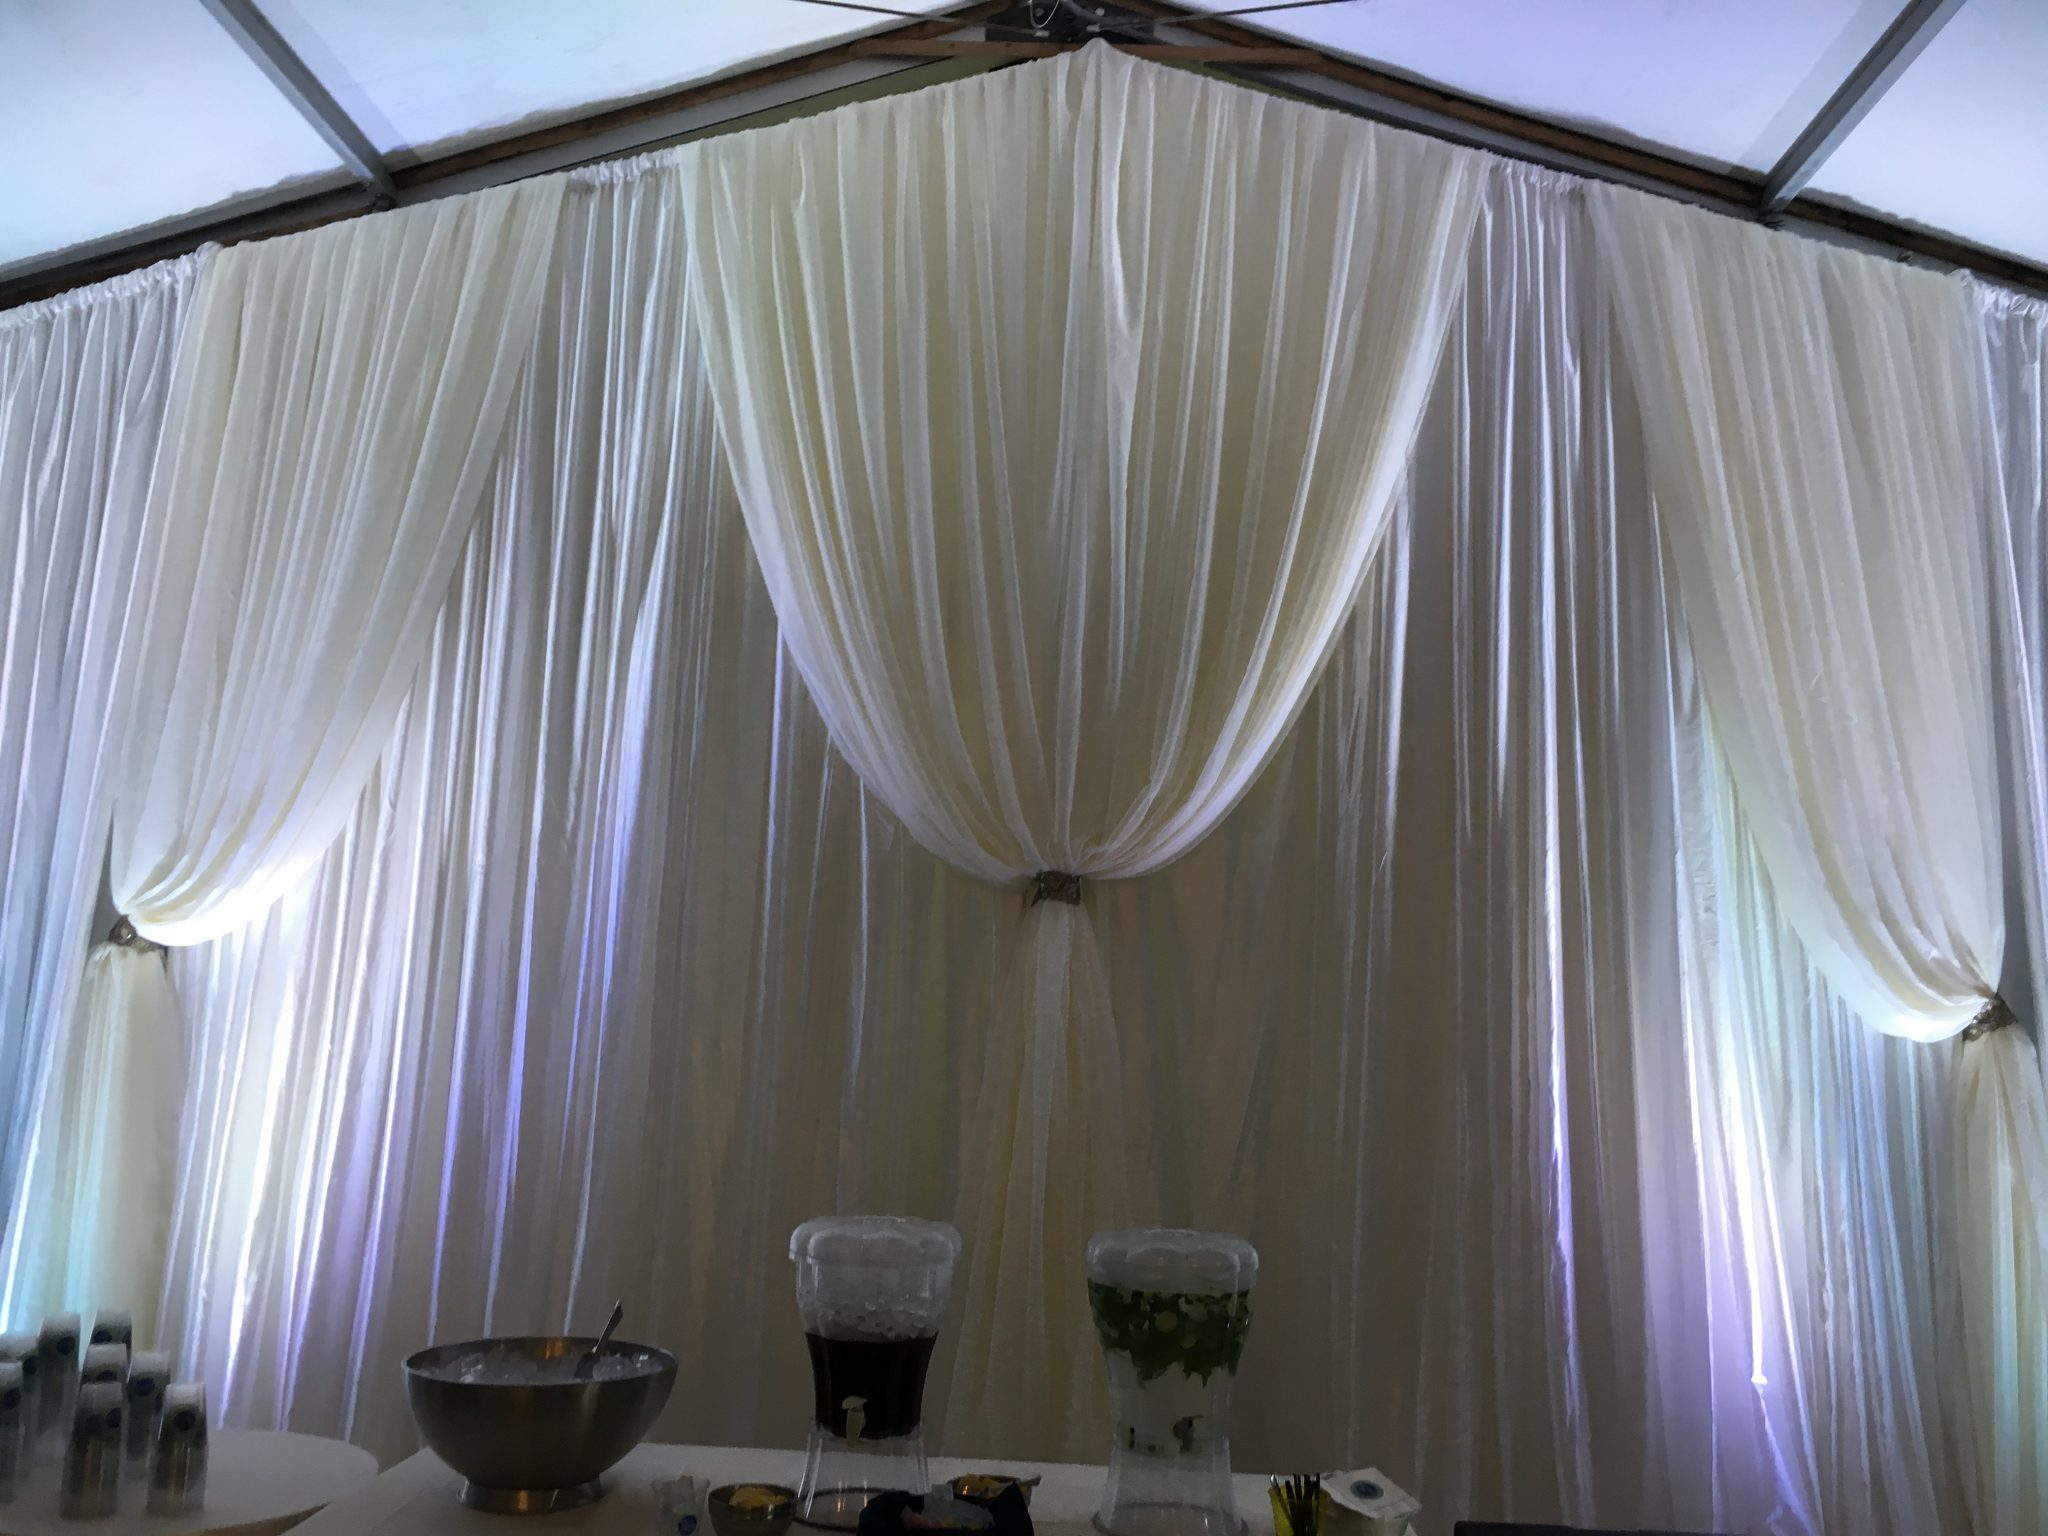 knoxville wedding decor | fabric draping | wedding themes | above